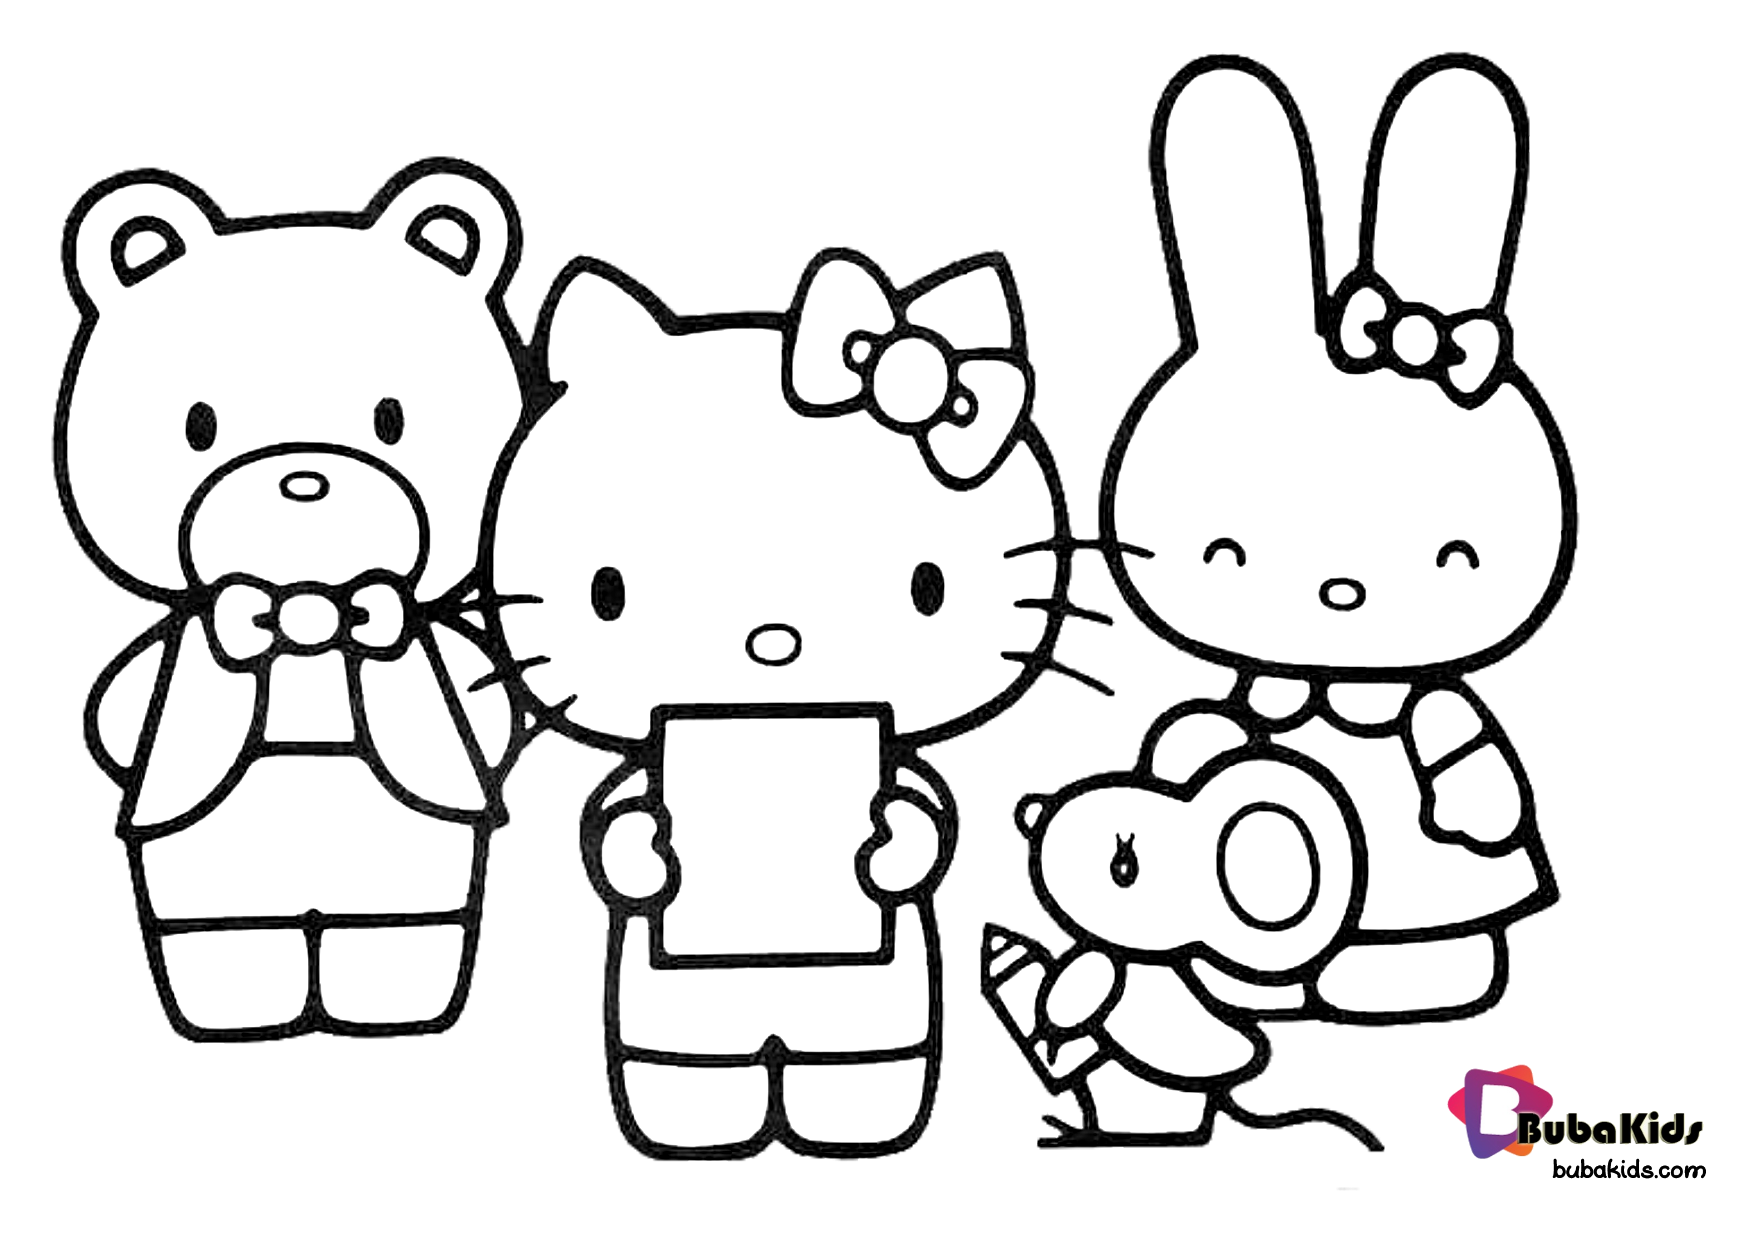 Hello Kitty And Friends Coloring Picture Collection Of Hello Kitty Coloring Pages For Teenage Pr Hello Kitty Hello Kitty Coloring Hello Kitty Colouring Pages